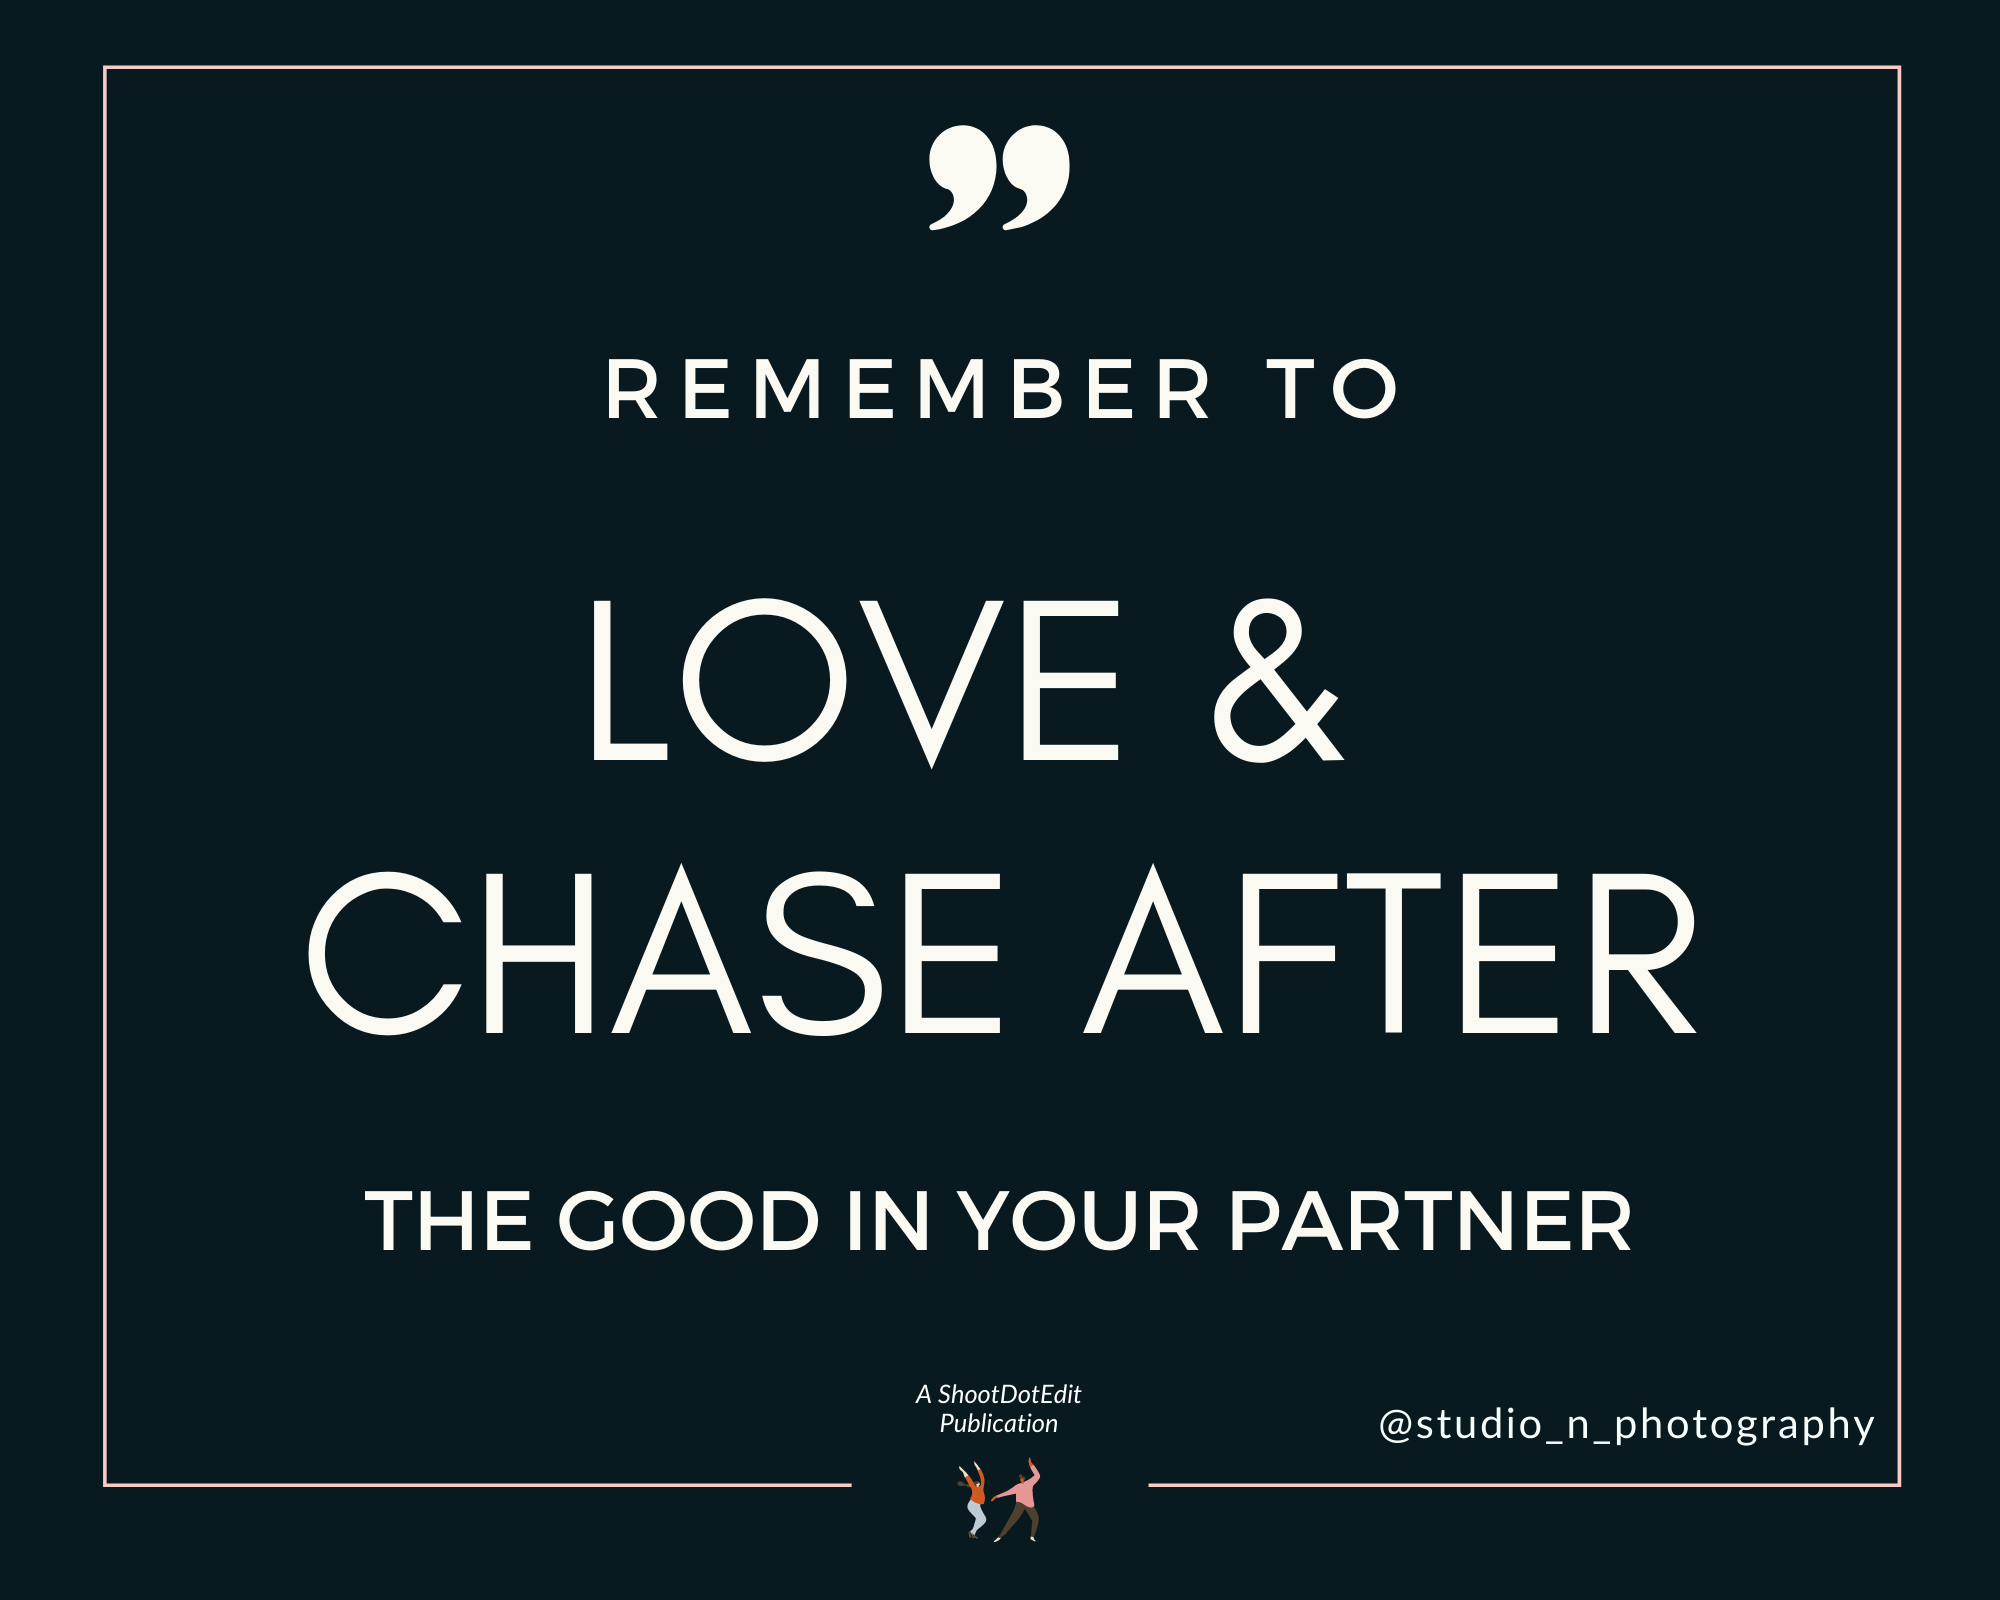 Infographic stating remember to love and chase after the good in your partner as a husband and wife photography team